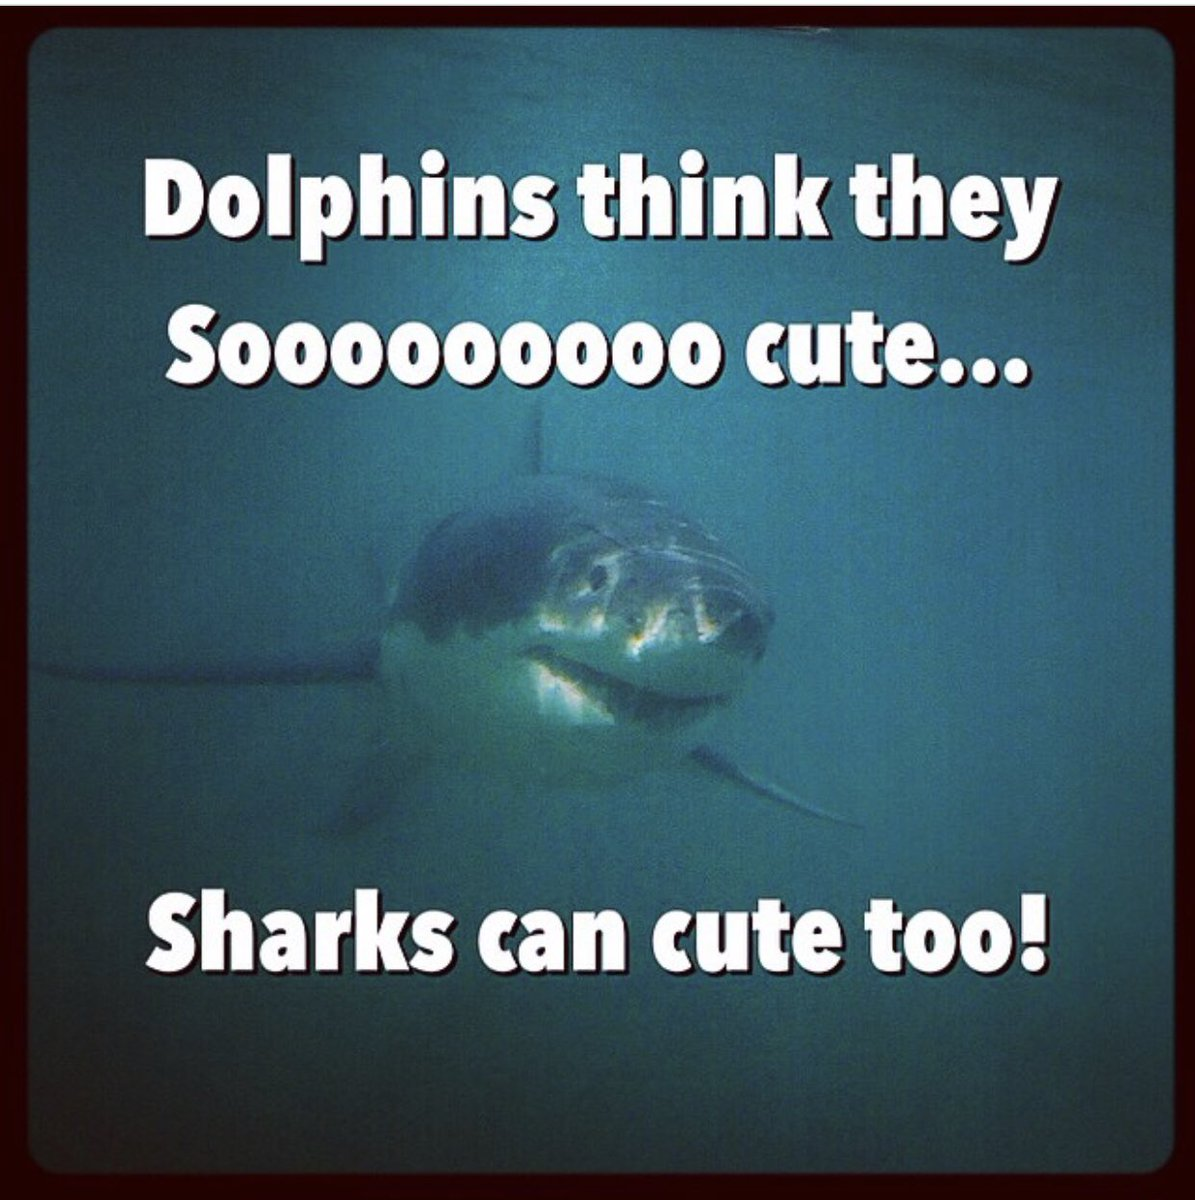 RT @RockStarLydia: Sharks can cute too! #TuesdayThoughts 🌊⚡️🎸 https://t.co/Mm8W7LGeue